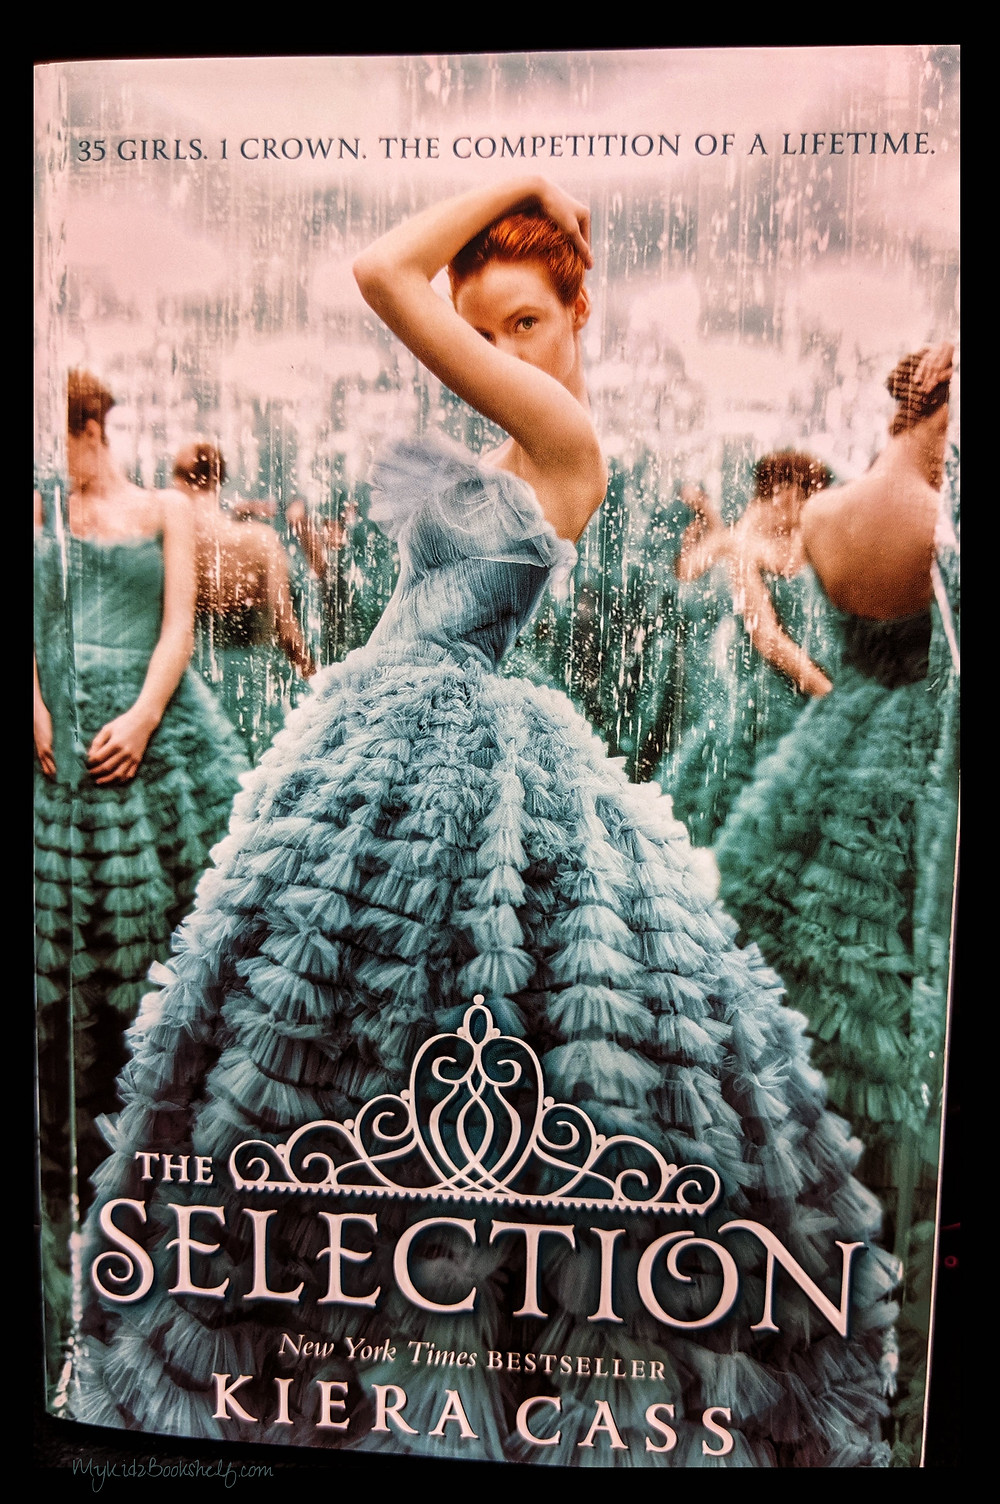 The Selection book cover by Kiera Cass shows girl in teal dress